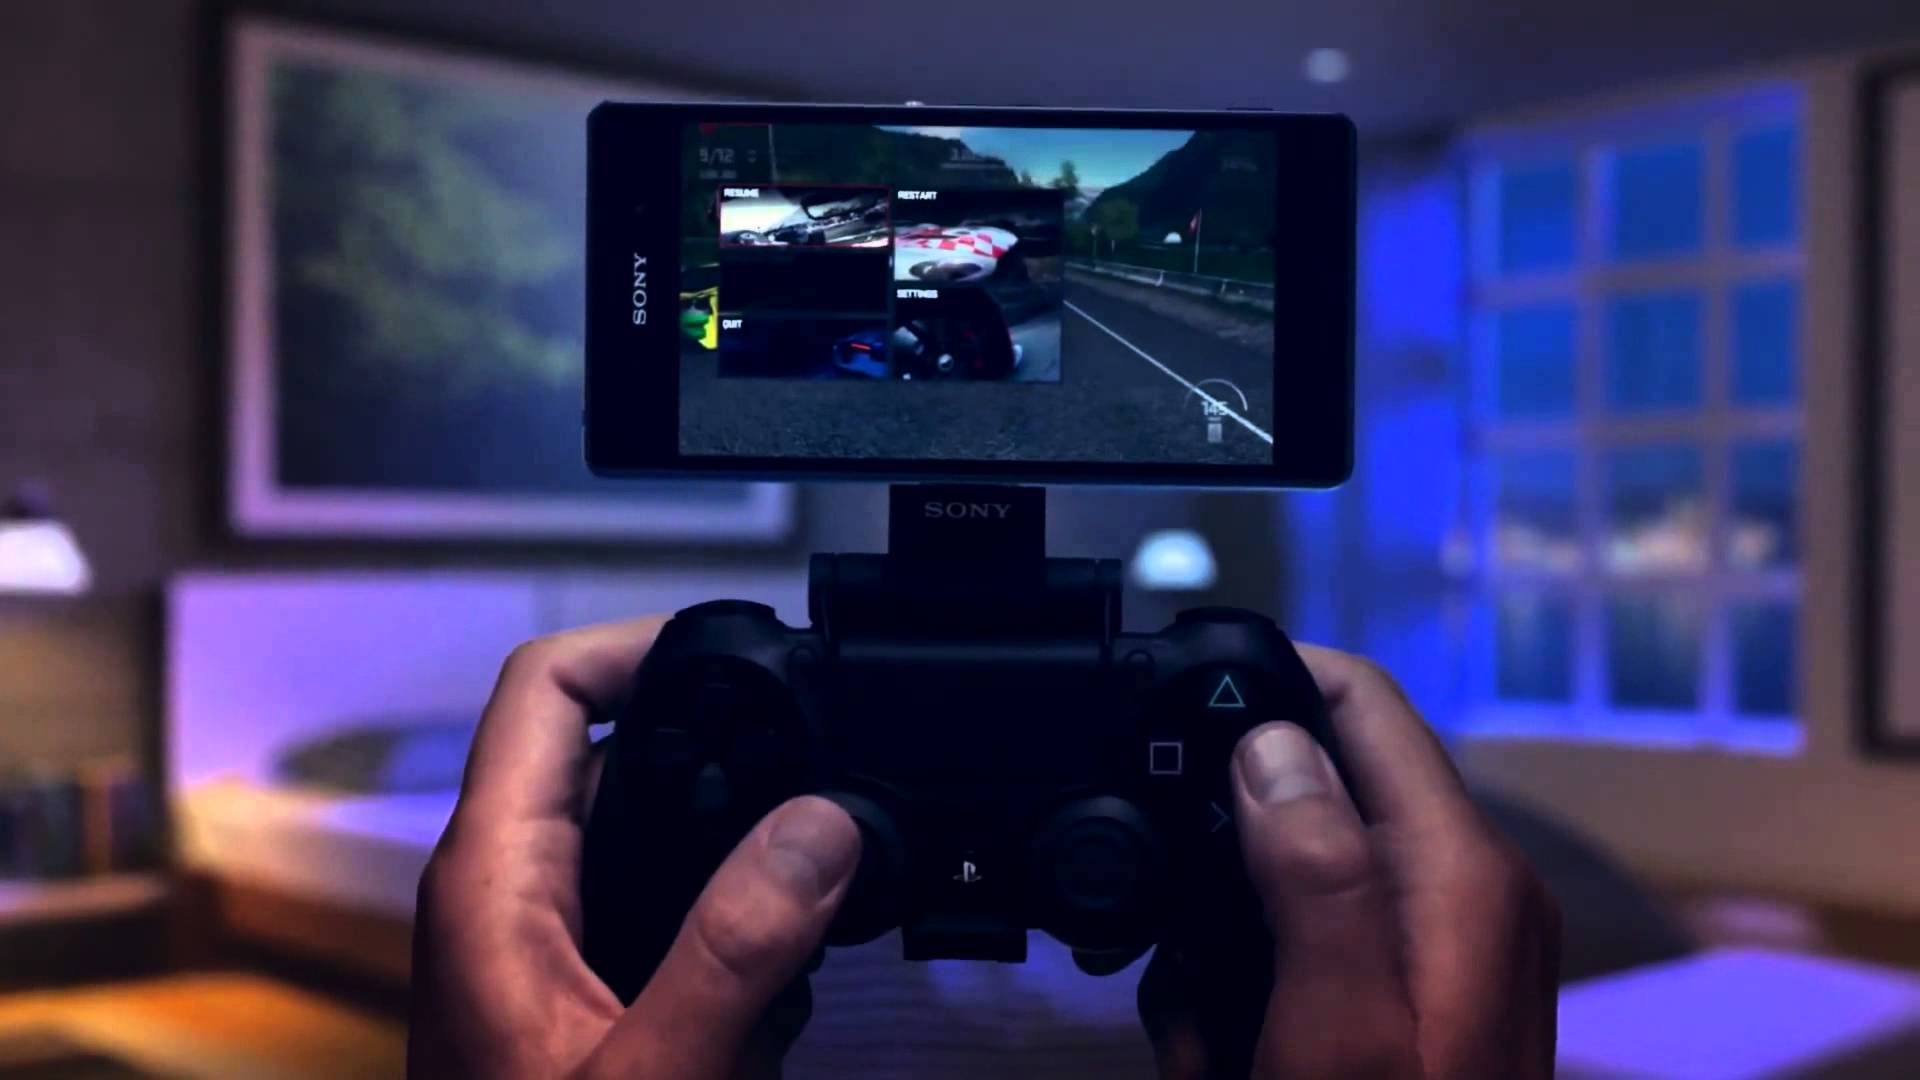 Playstation 4 - Remote Play with the Xperia Z3